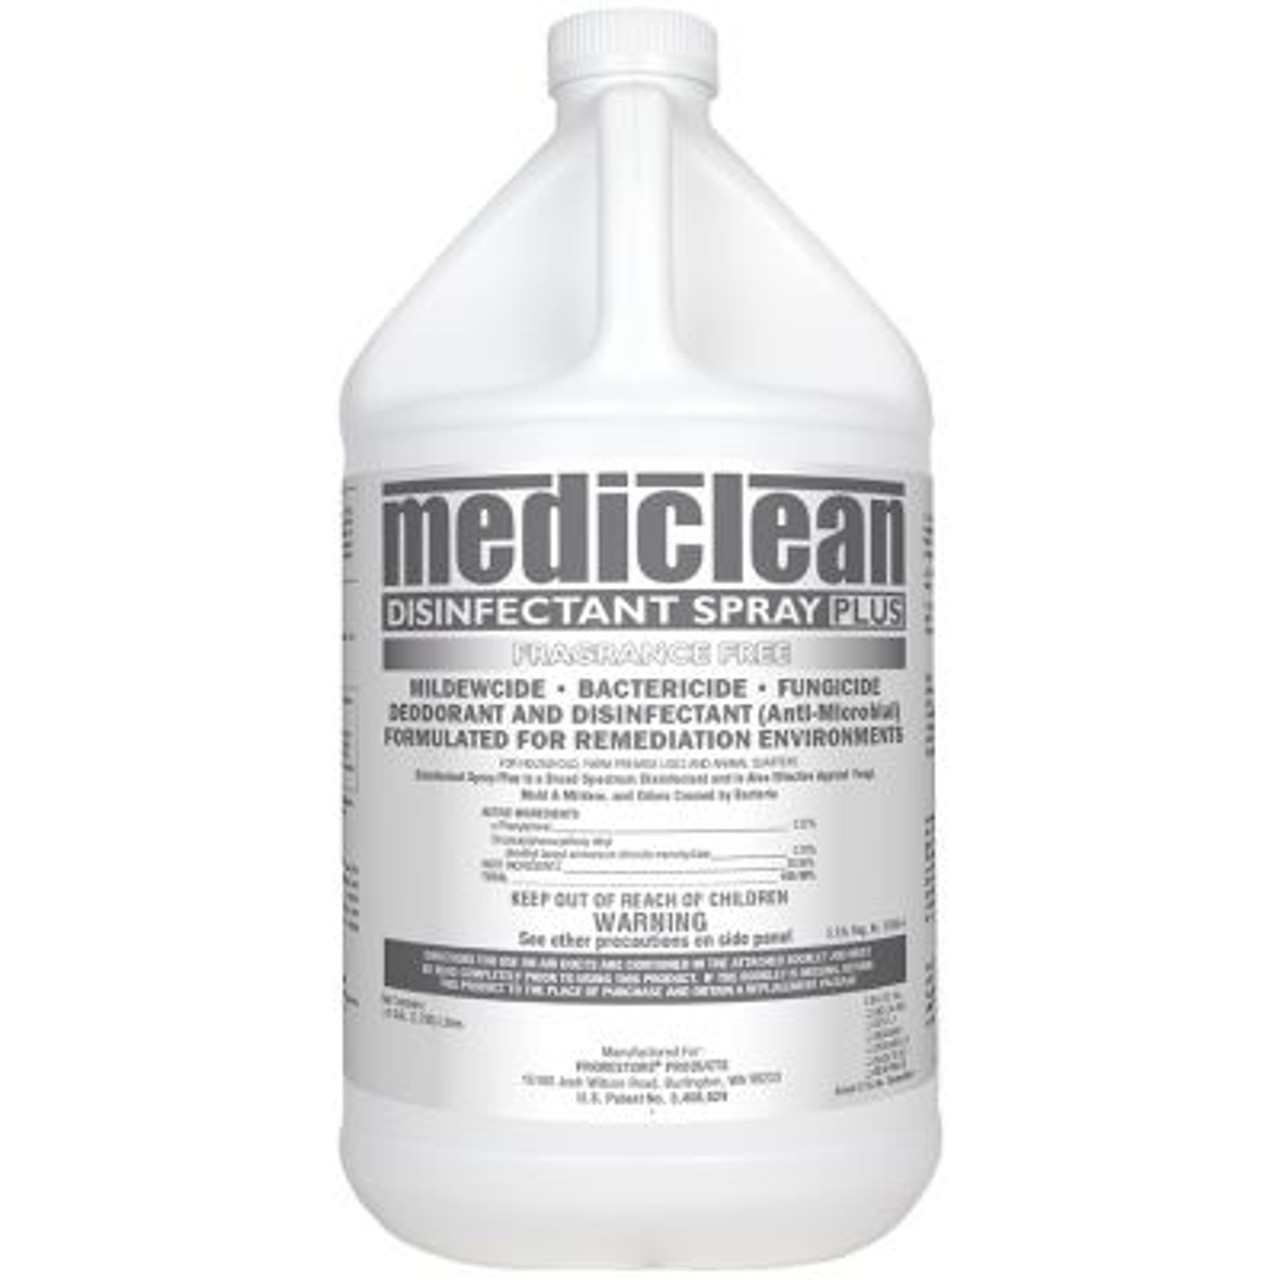 MediClean® Disinfectant Spray Plus (formerly Microban®), 1-Gallon, Fragrance Free